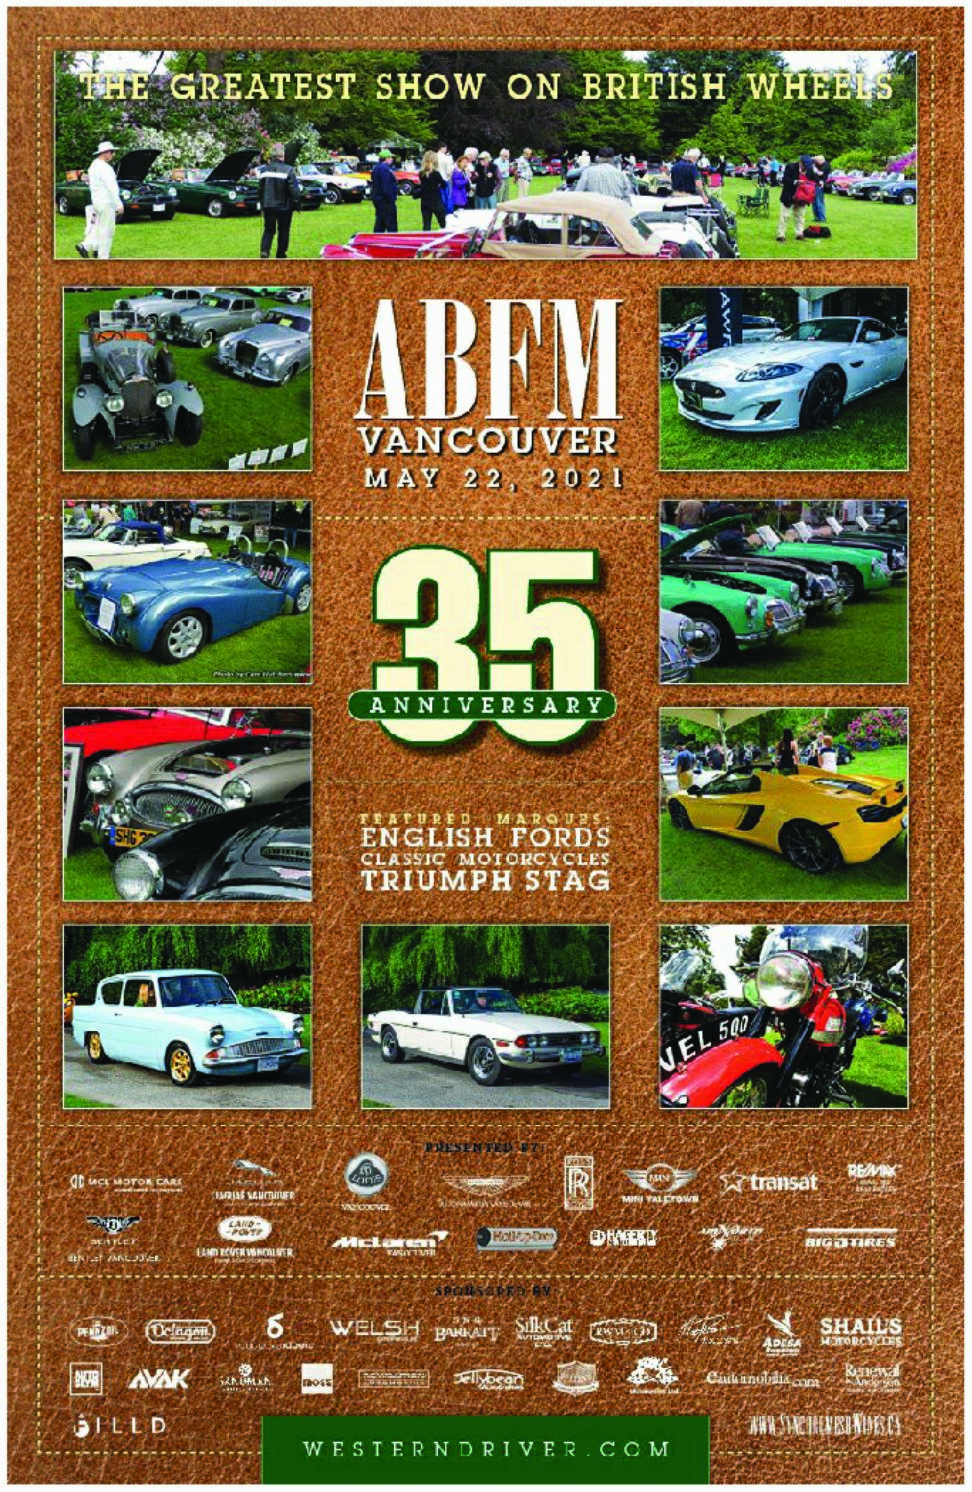 2021 Vancouver ABFM Poster